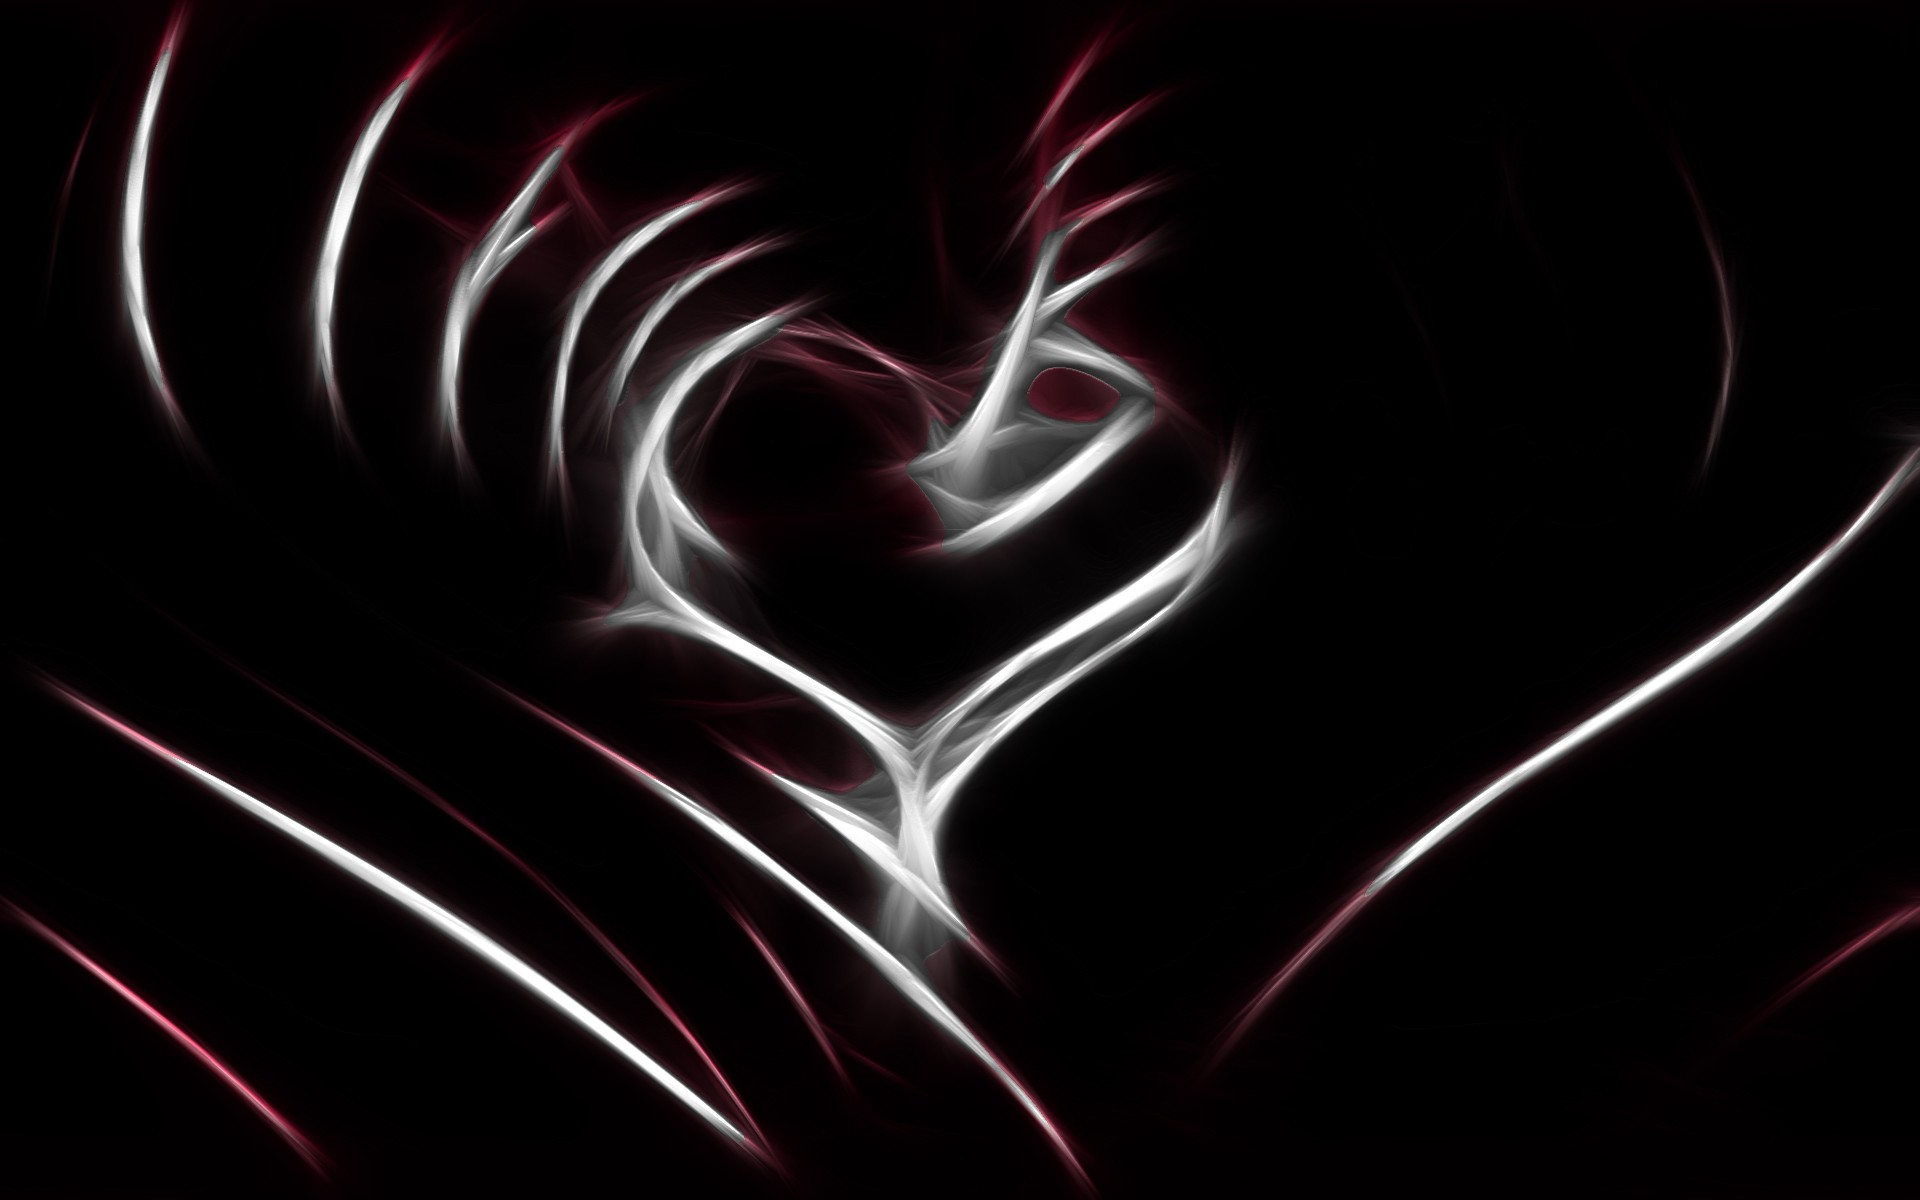 1920x1200 Wallpaper Abstract, Heart, Line, White, Red, Black